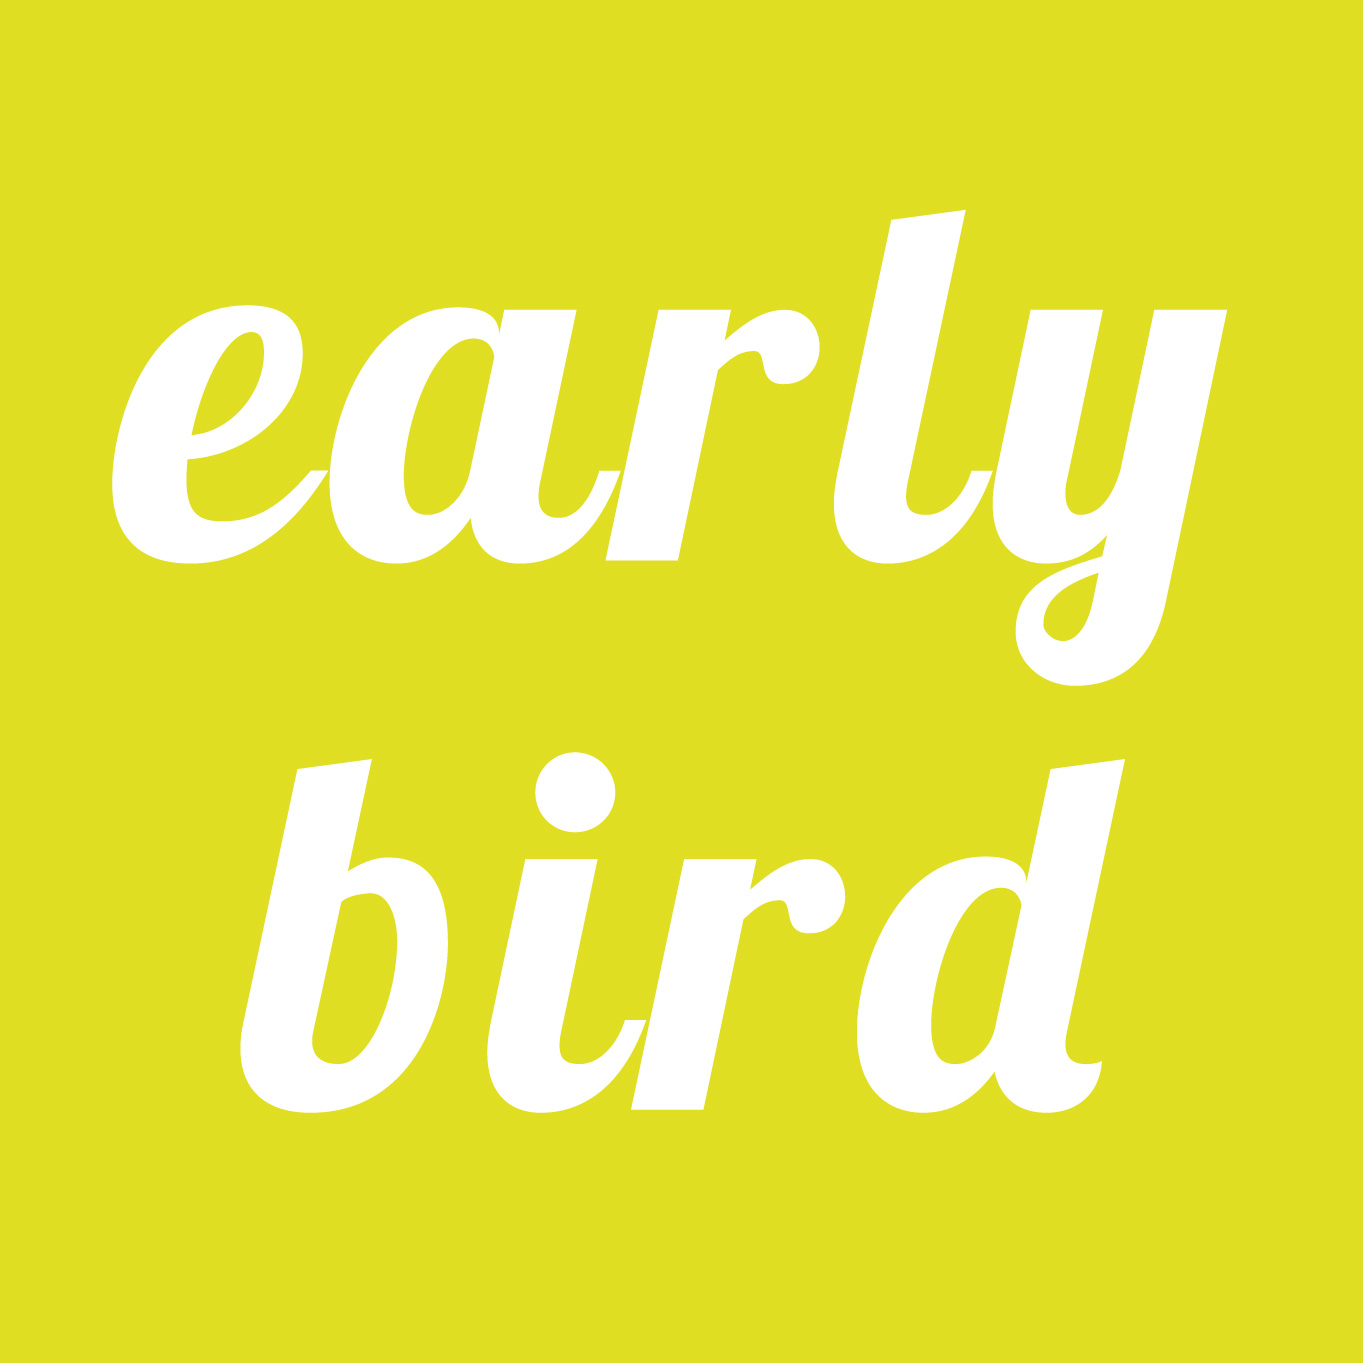 NOTRE OFFRE EARLY BIRD EST TERMINEE - STAGE 2:::7